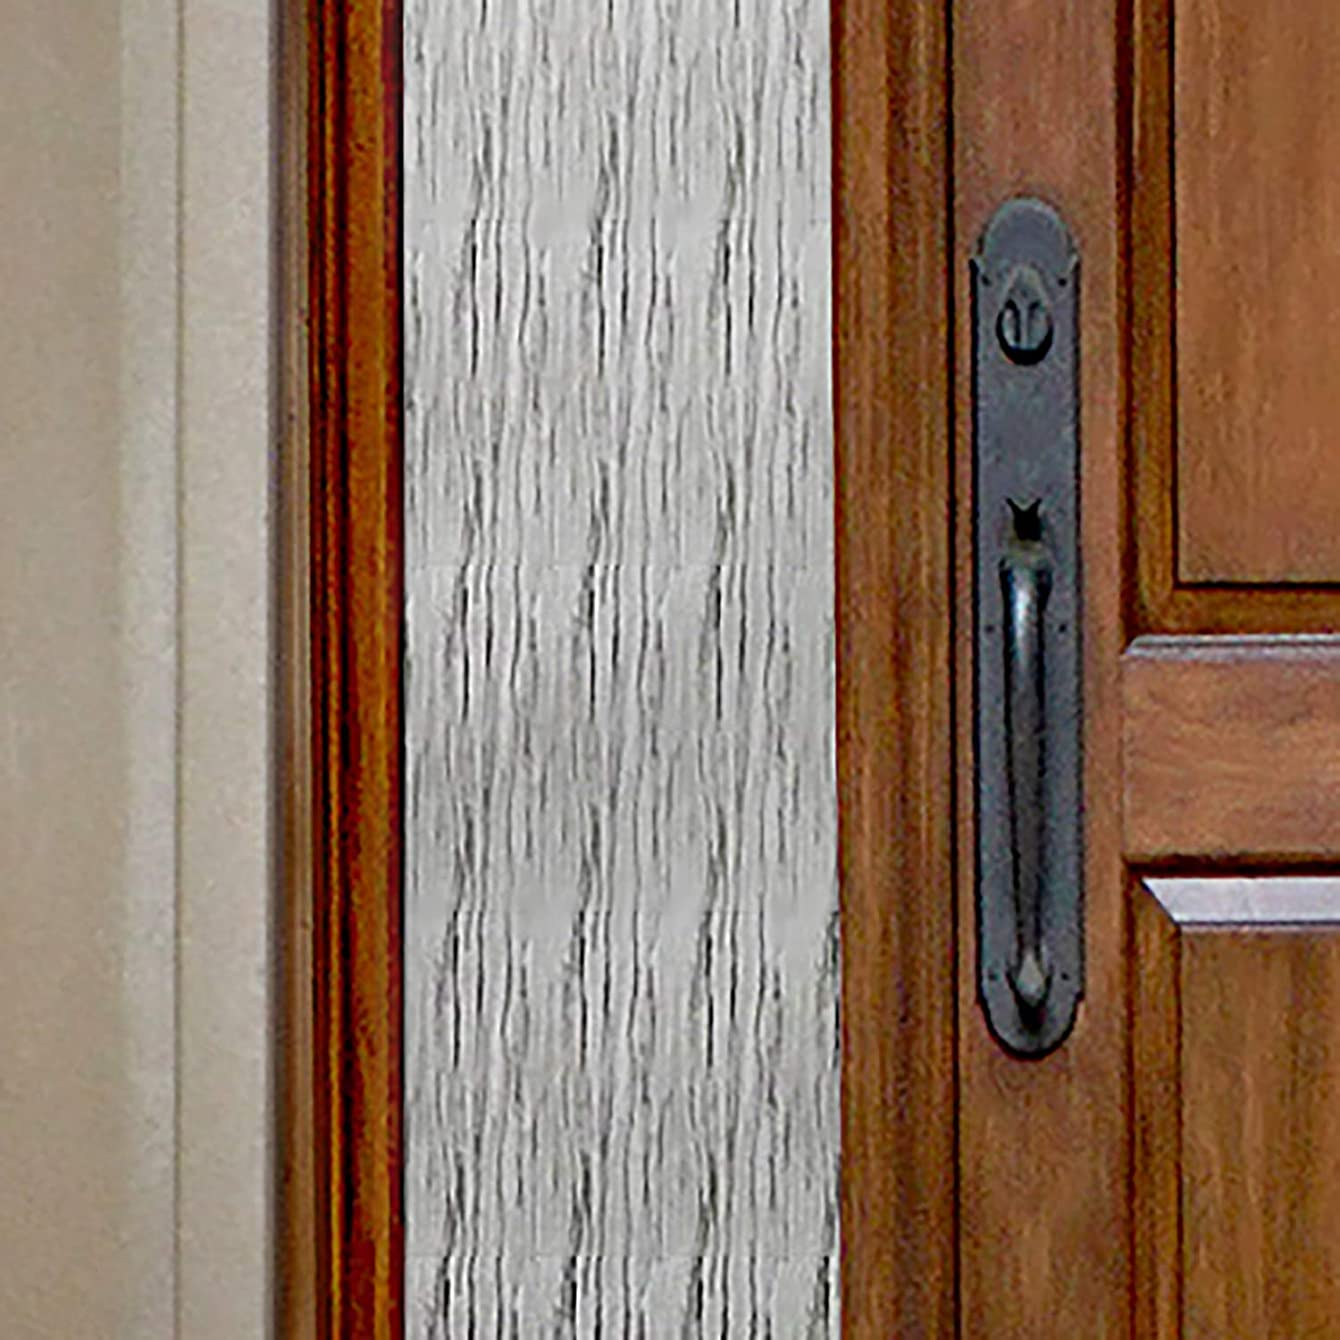 Gila Privacy Control Waterfall Sidelights Entryway Residential Window Film DIY Static Cling Easy Install 1ft x 6.5ft (12in x 78in) (6.5 sq ft)